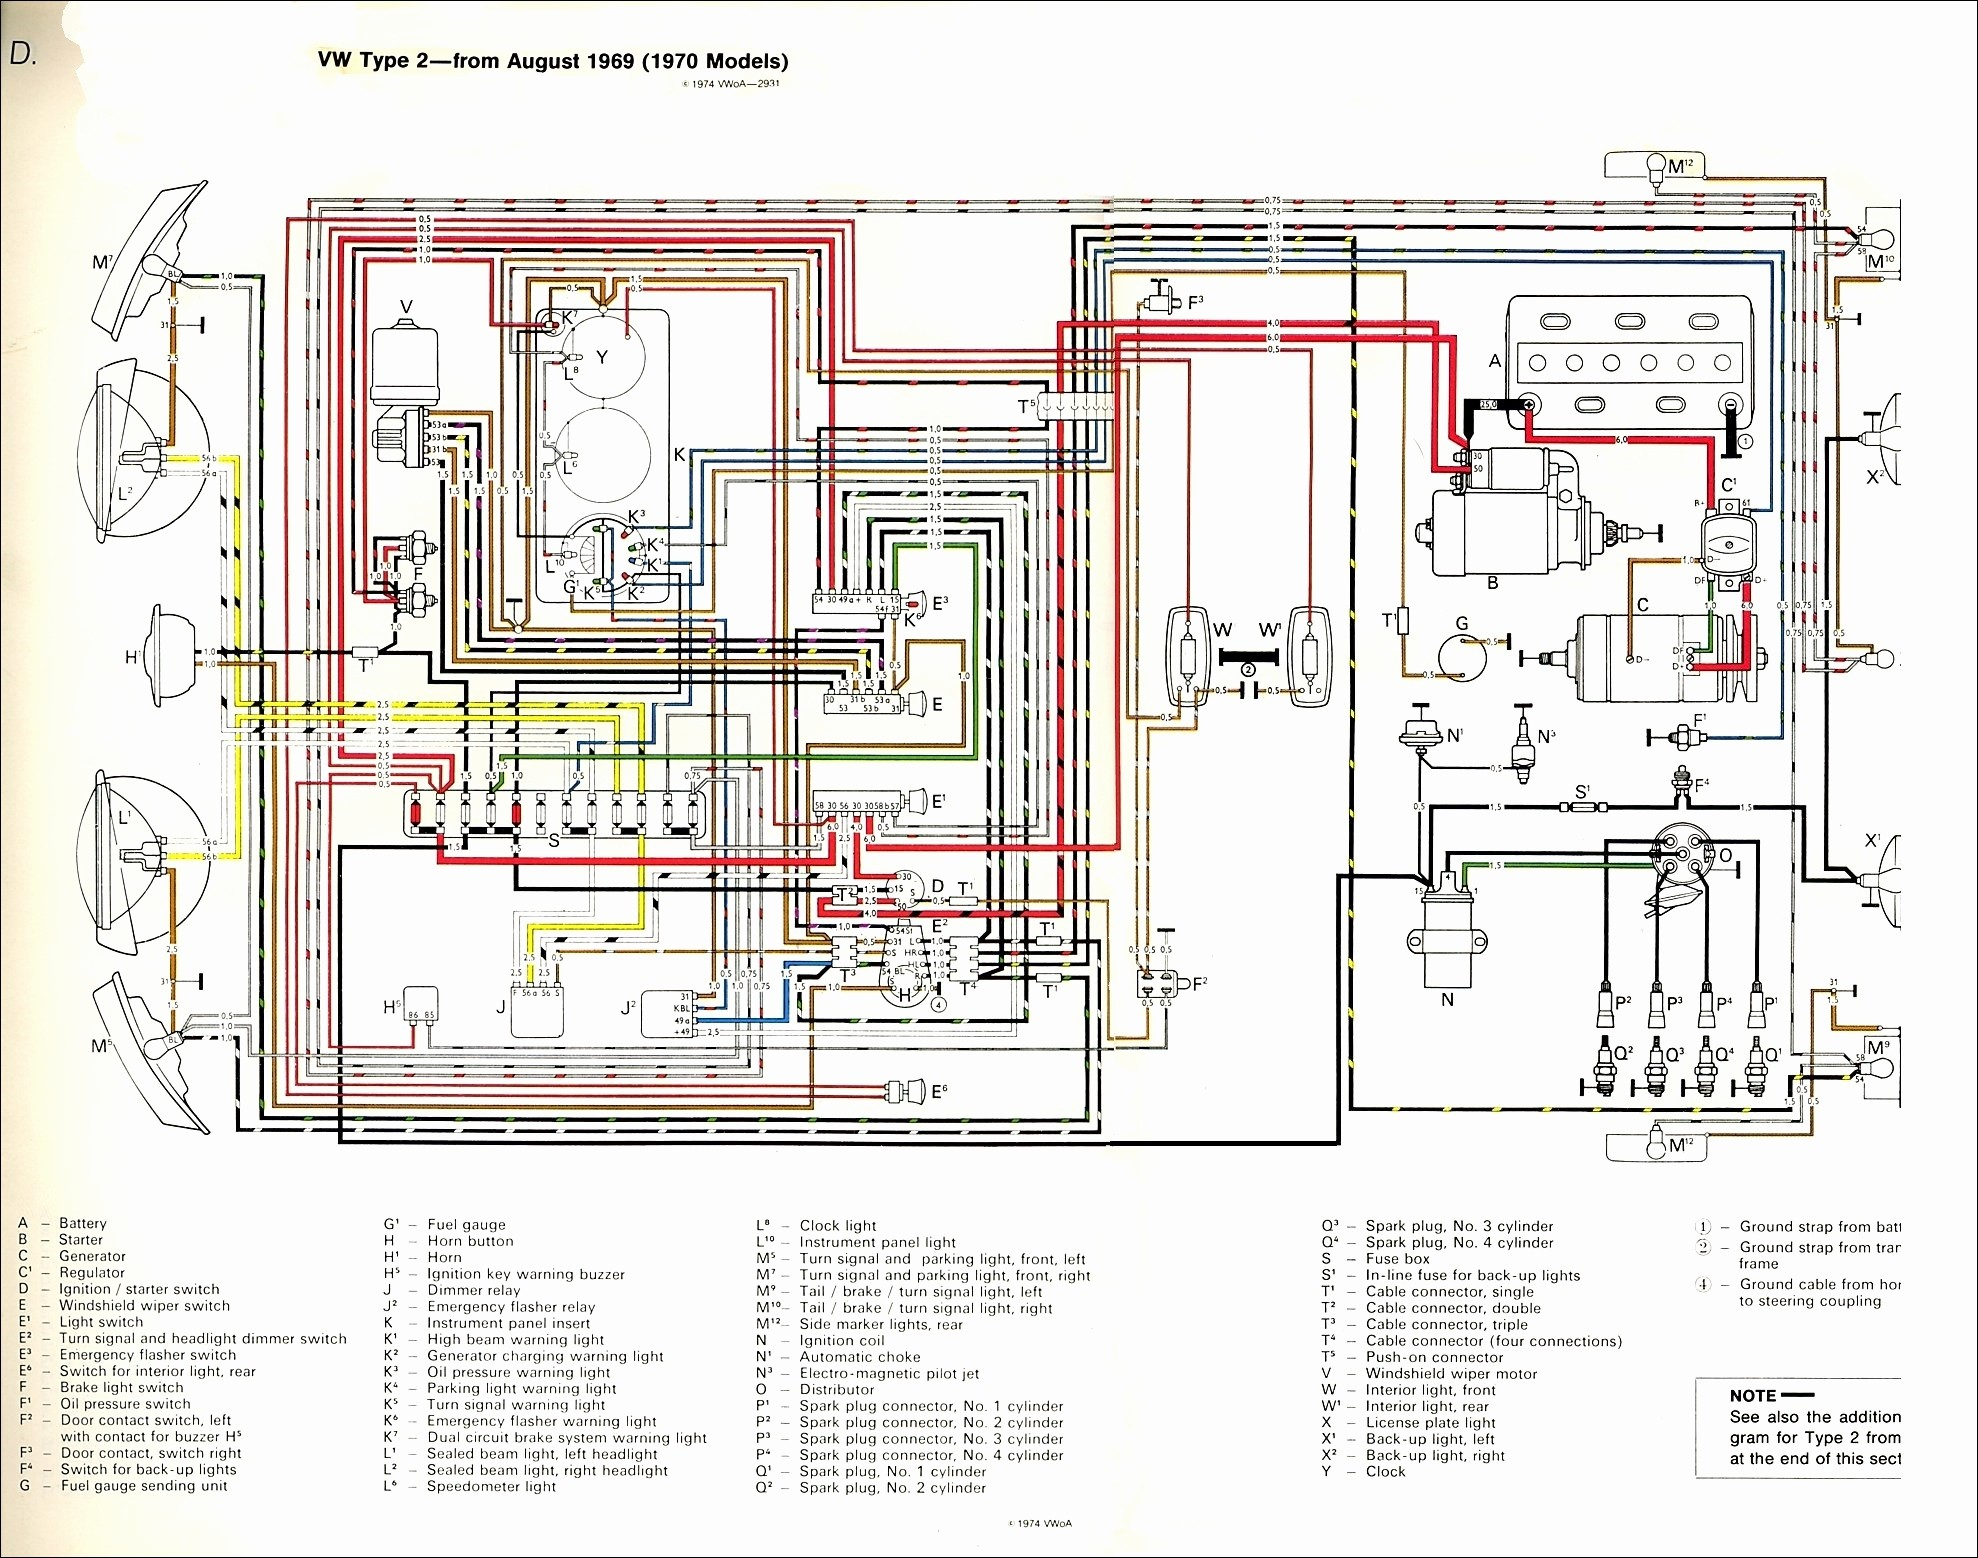 Turn Signal Brake Light Wiring Diagram Signals Inner Fuse Box 2005 Chevy Colorado Related Post